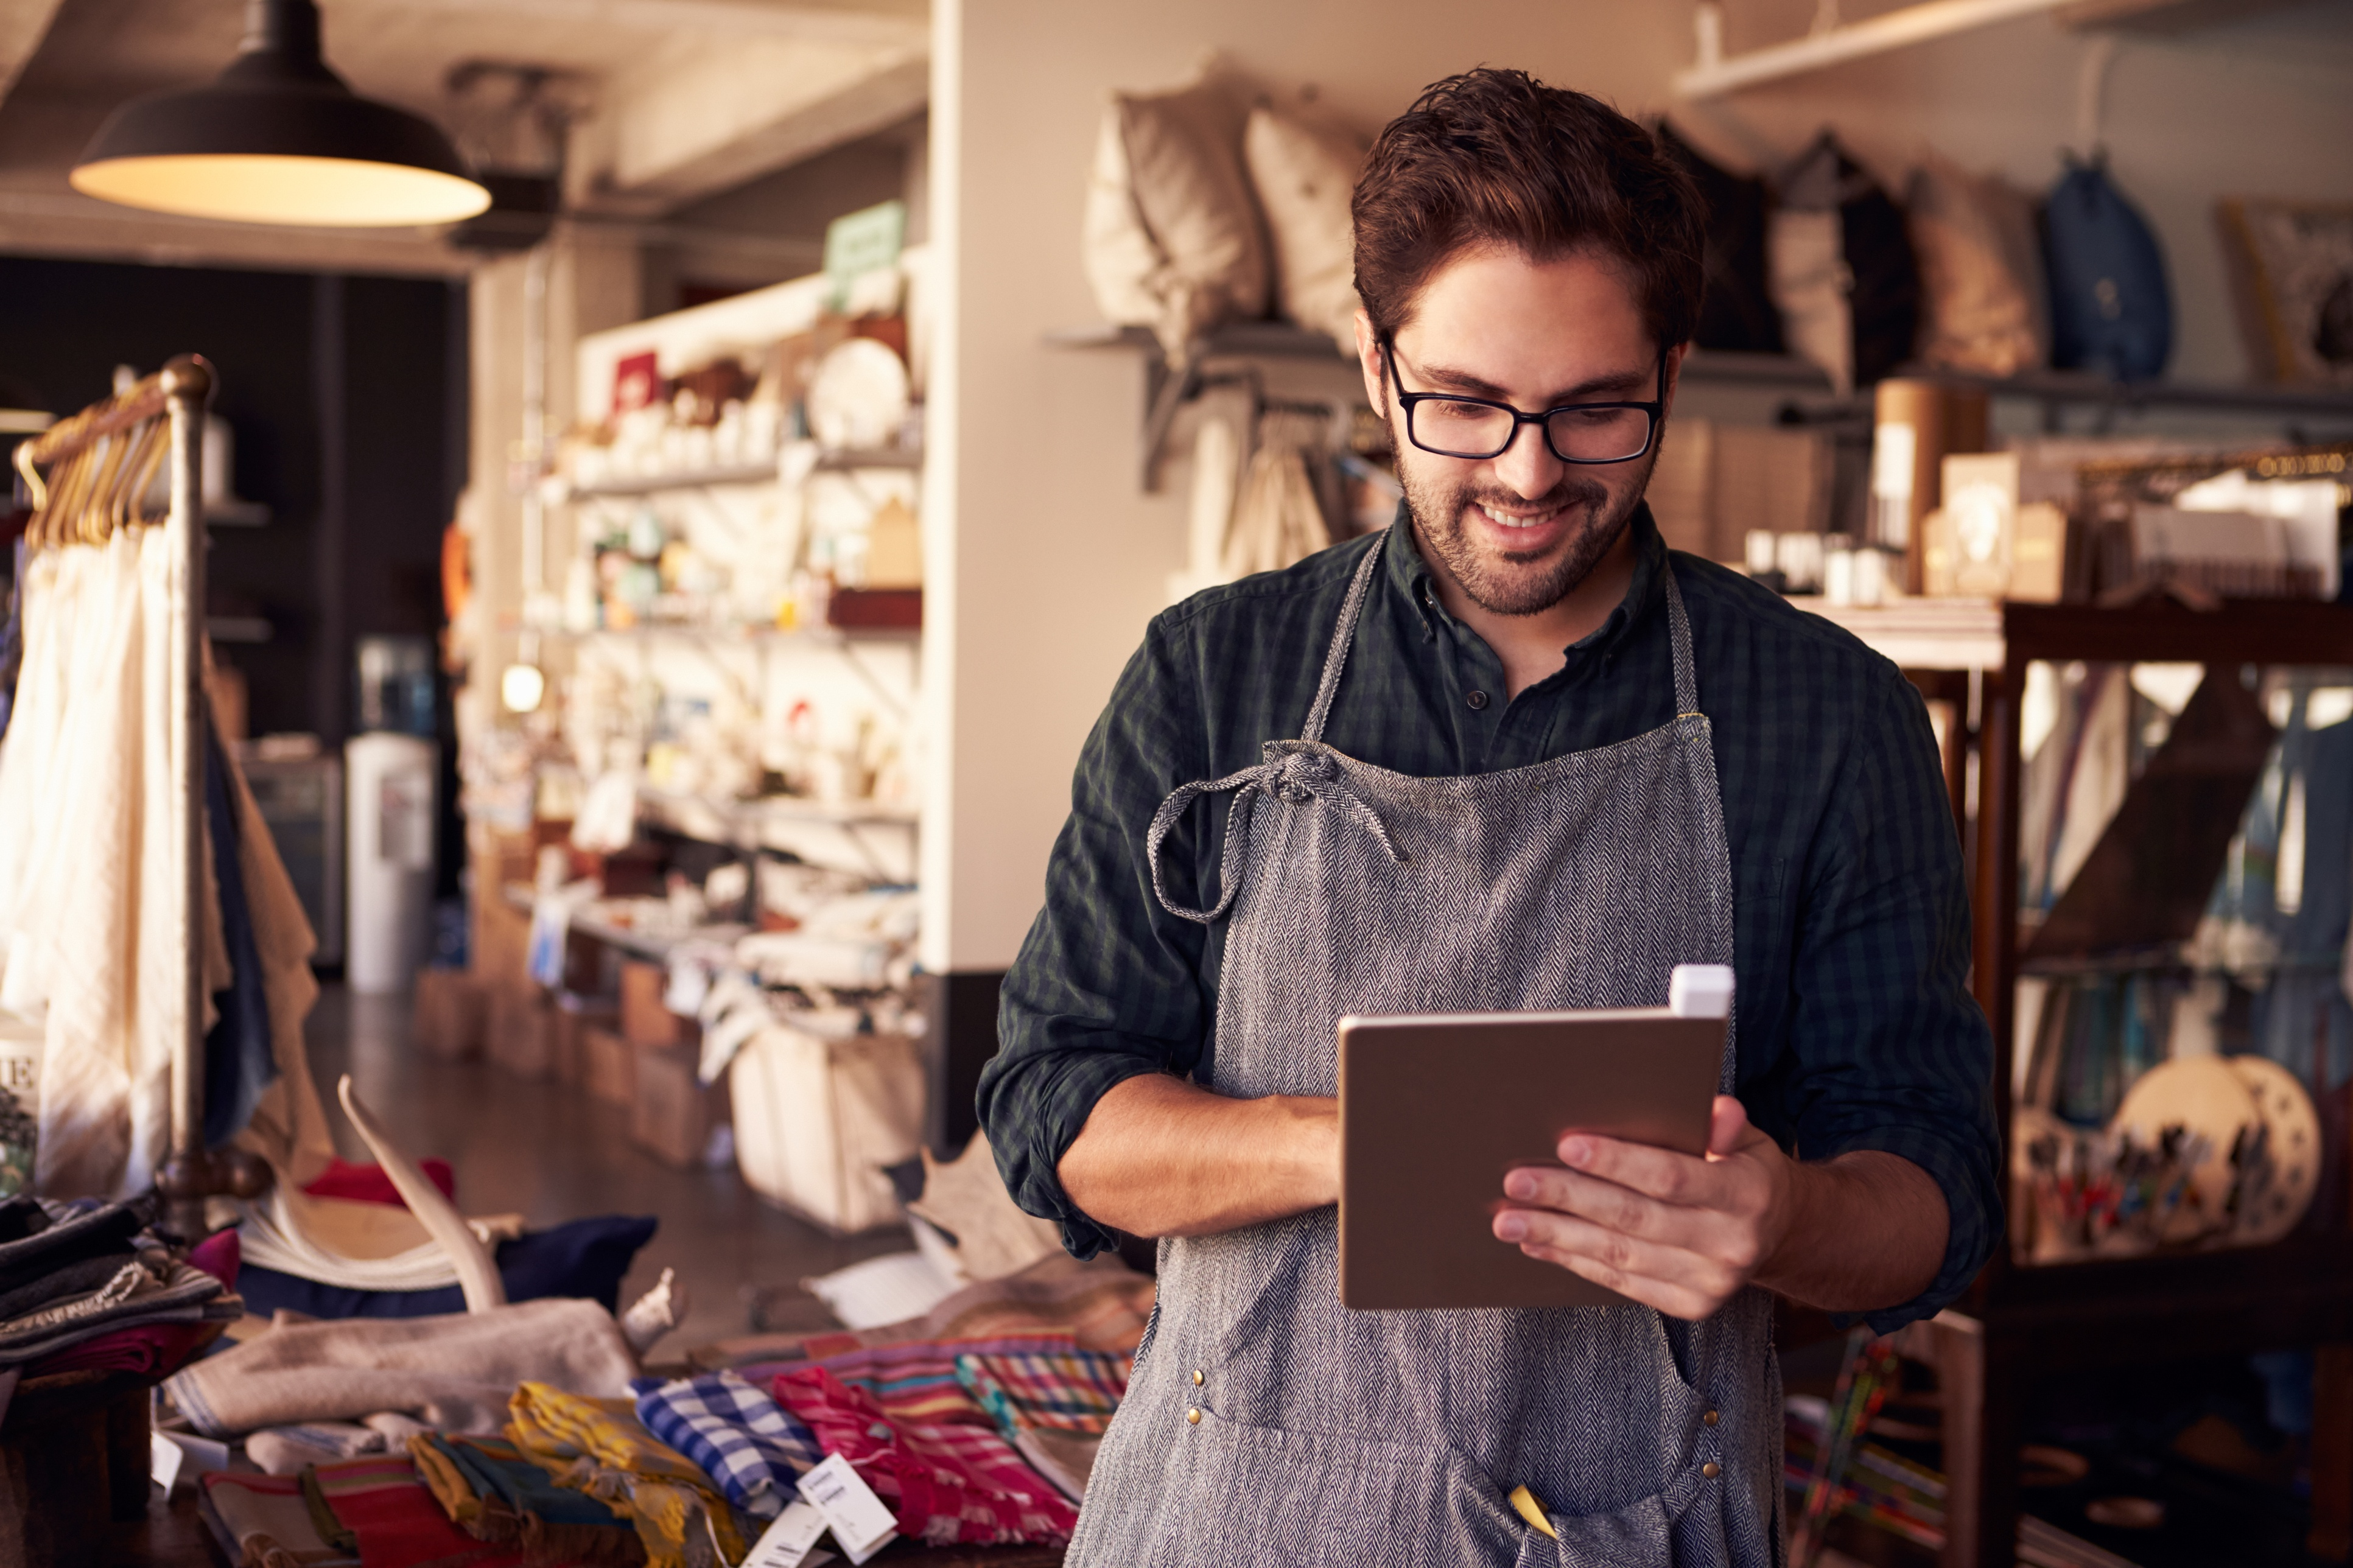 IoT and Retail, Part II: Enhancing the Customer Experience